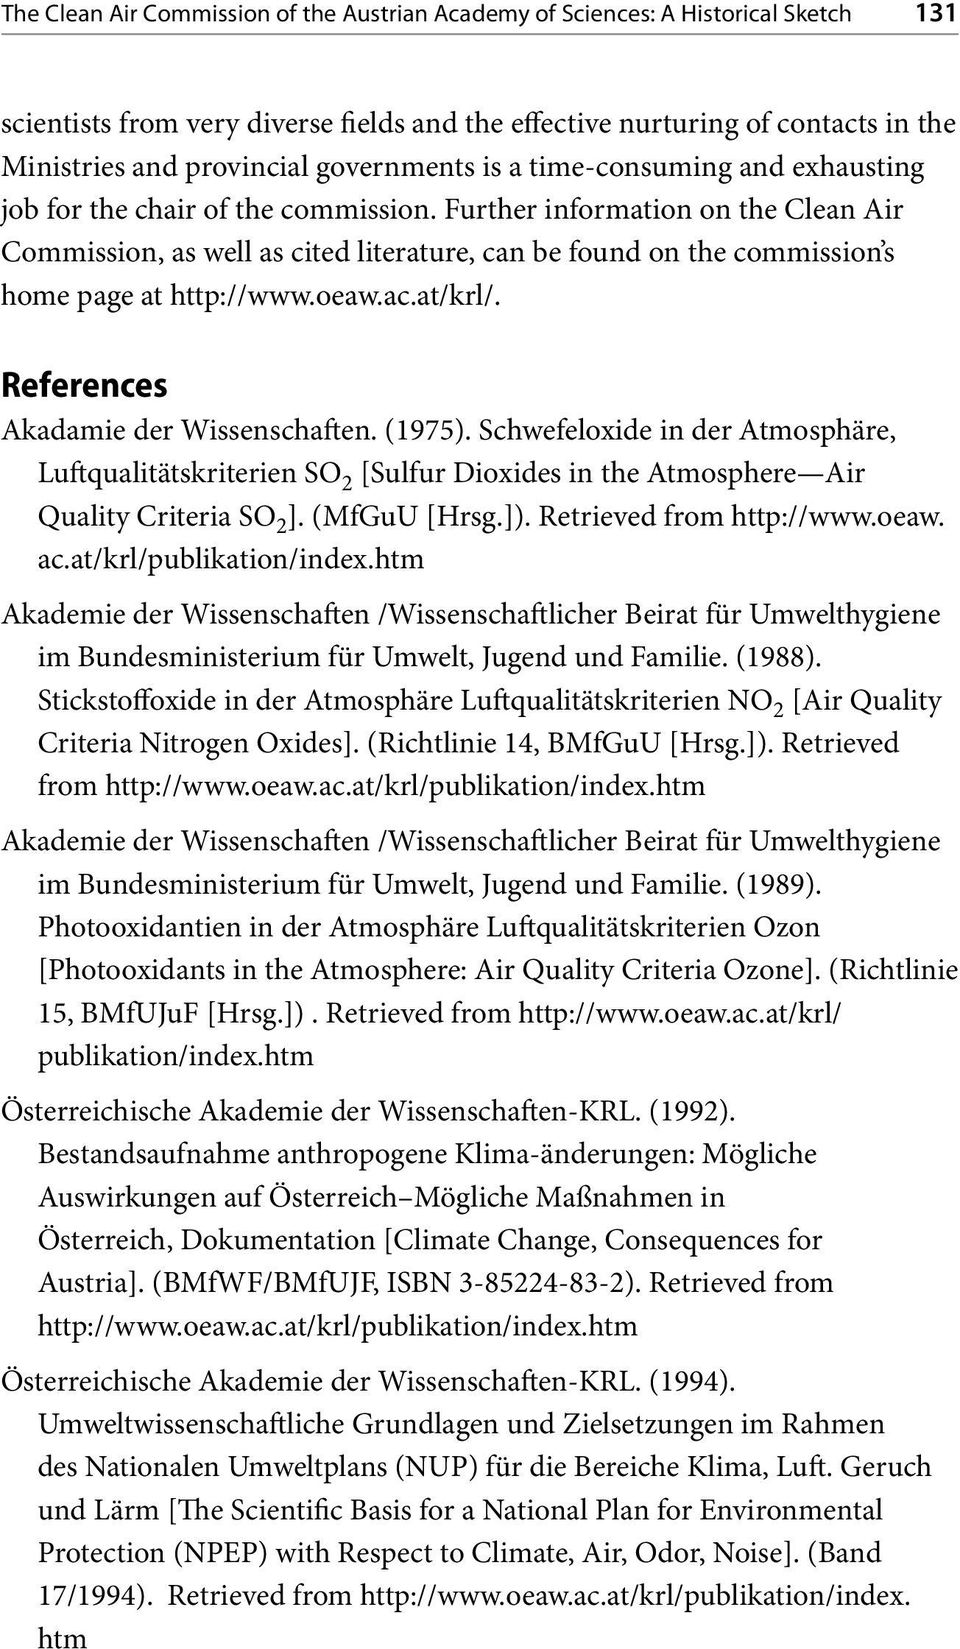 Further information on the Clean Air Commission, as well as cited literature, can be found on the commission s home page at http://www.oeaw.ac.at/krl/. References Akadamie der Wissenschaften. (1975).